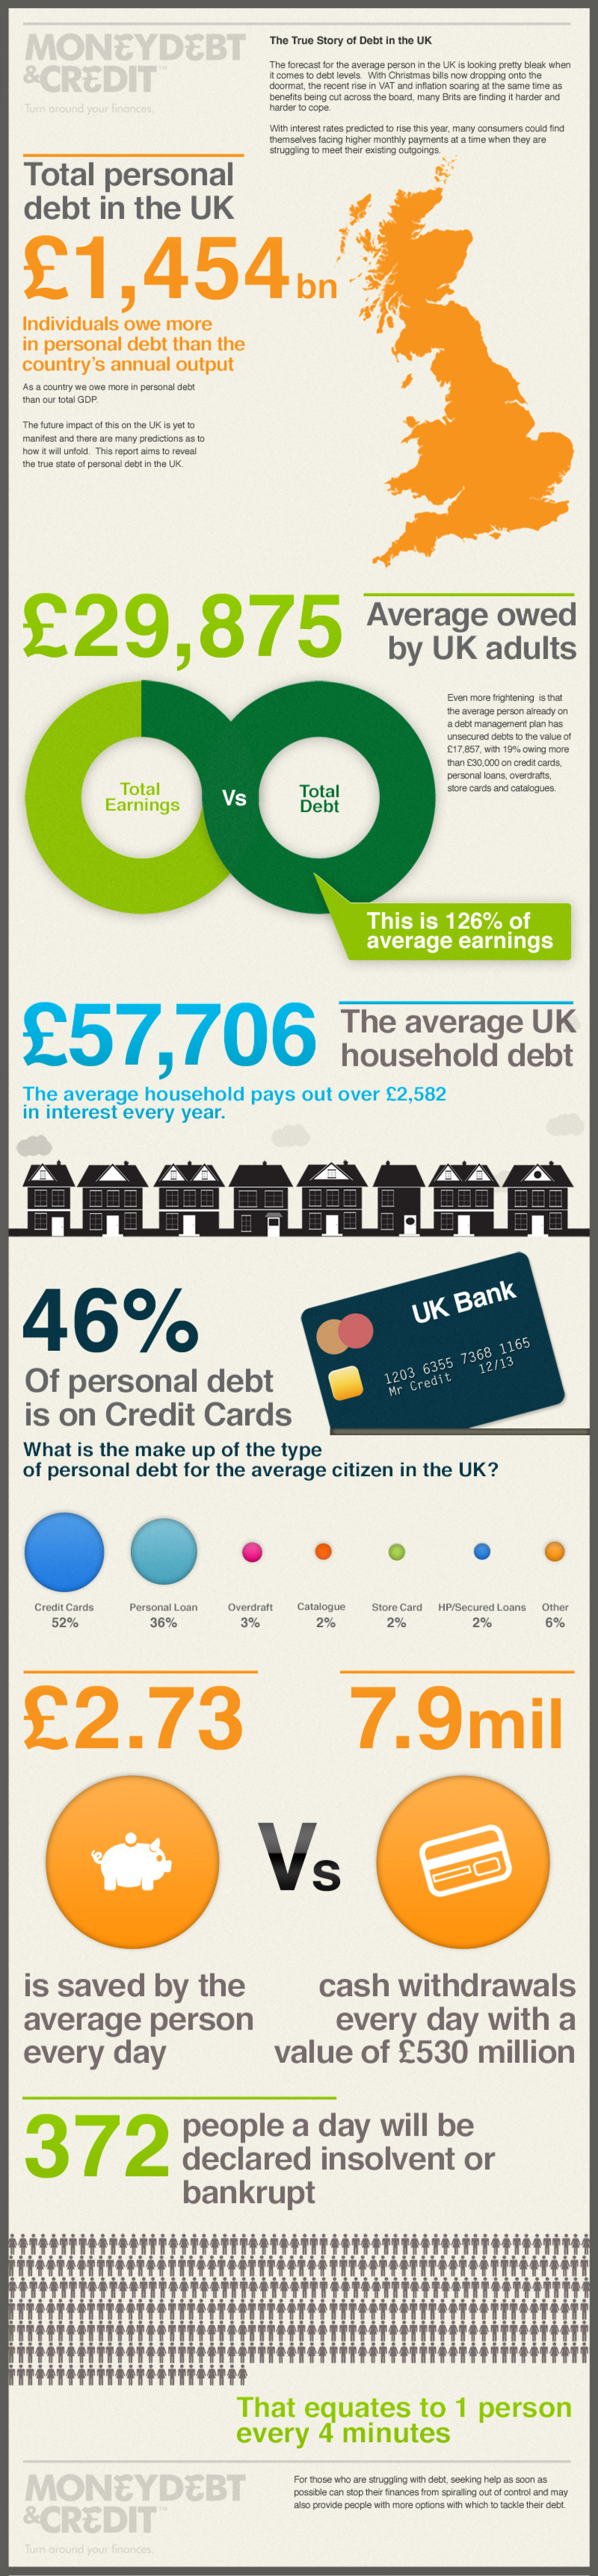 UK Debt Problem Facts and Figures Infographic